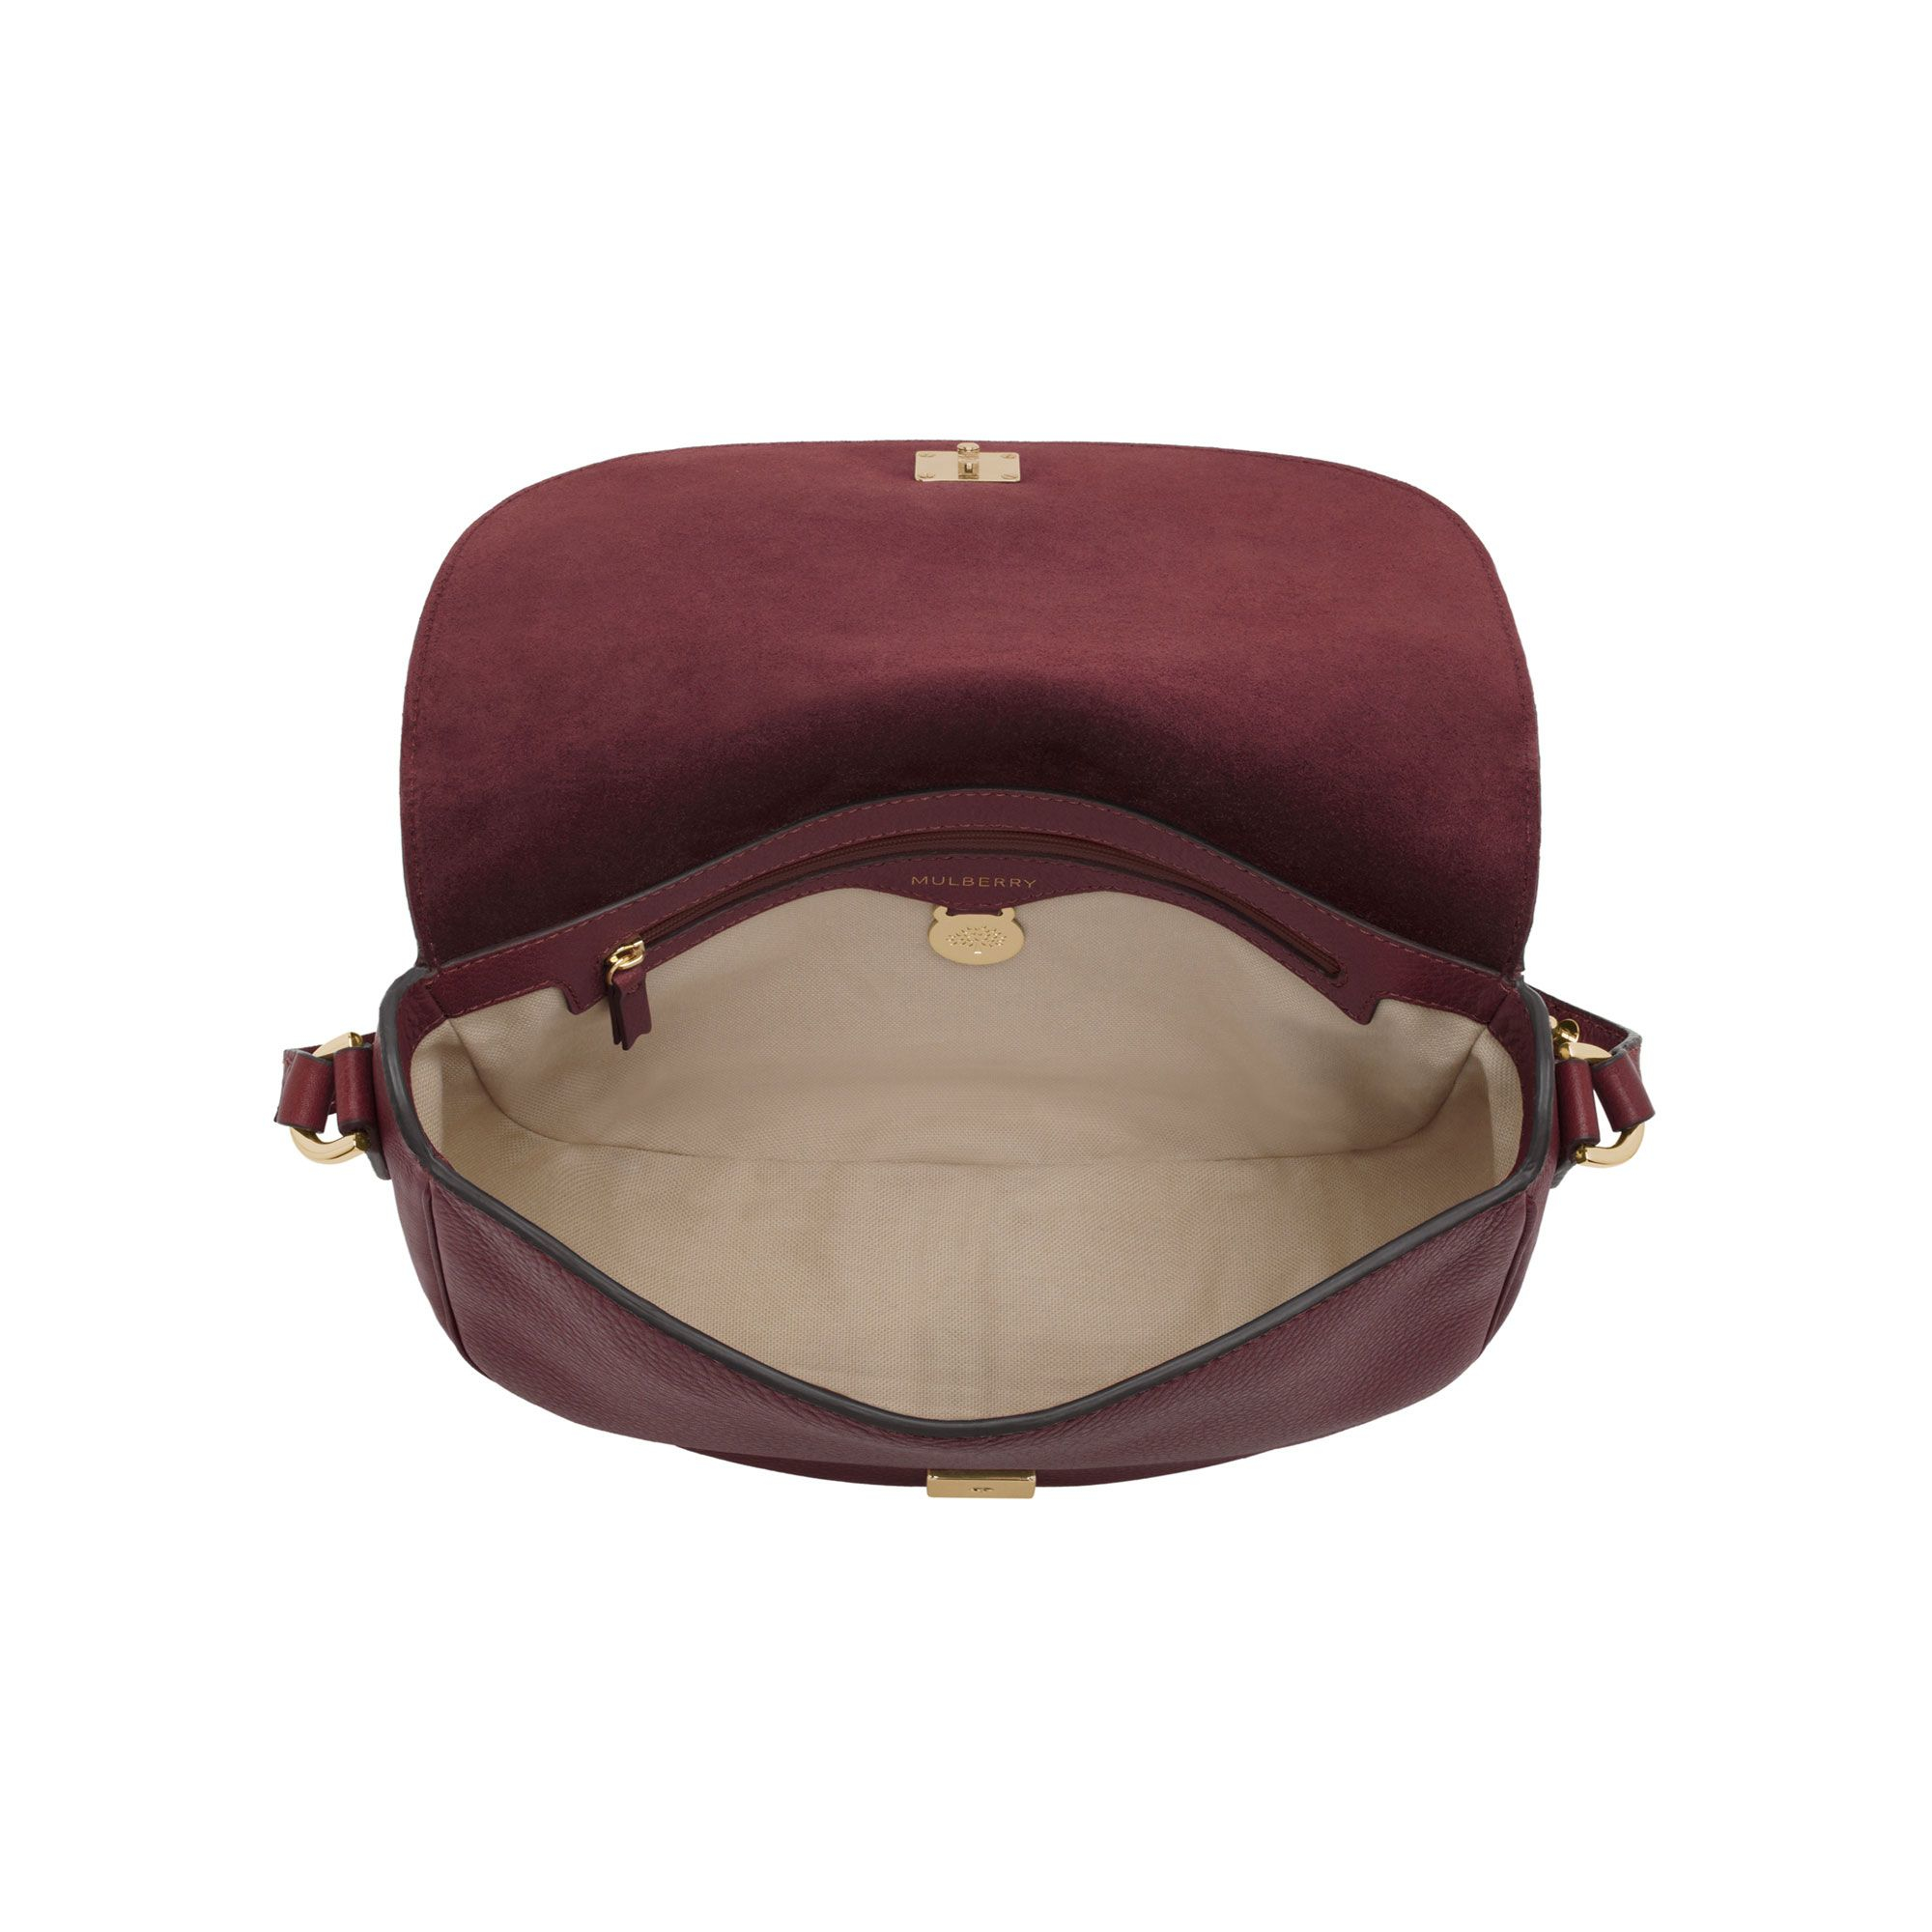 990d1a1a1de1 ... low price leather sold lyst mulberry tessie satchel bag in brown 8dc51  cb95c